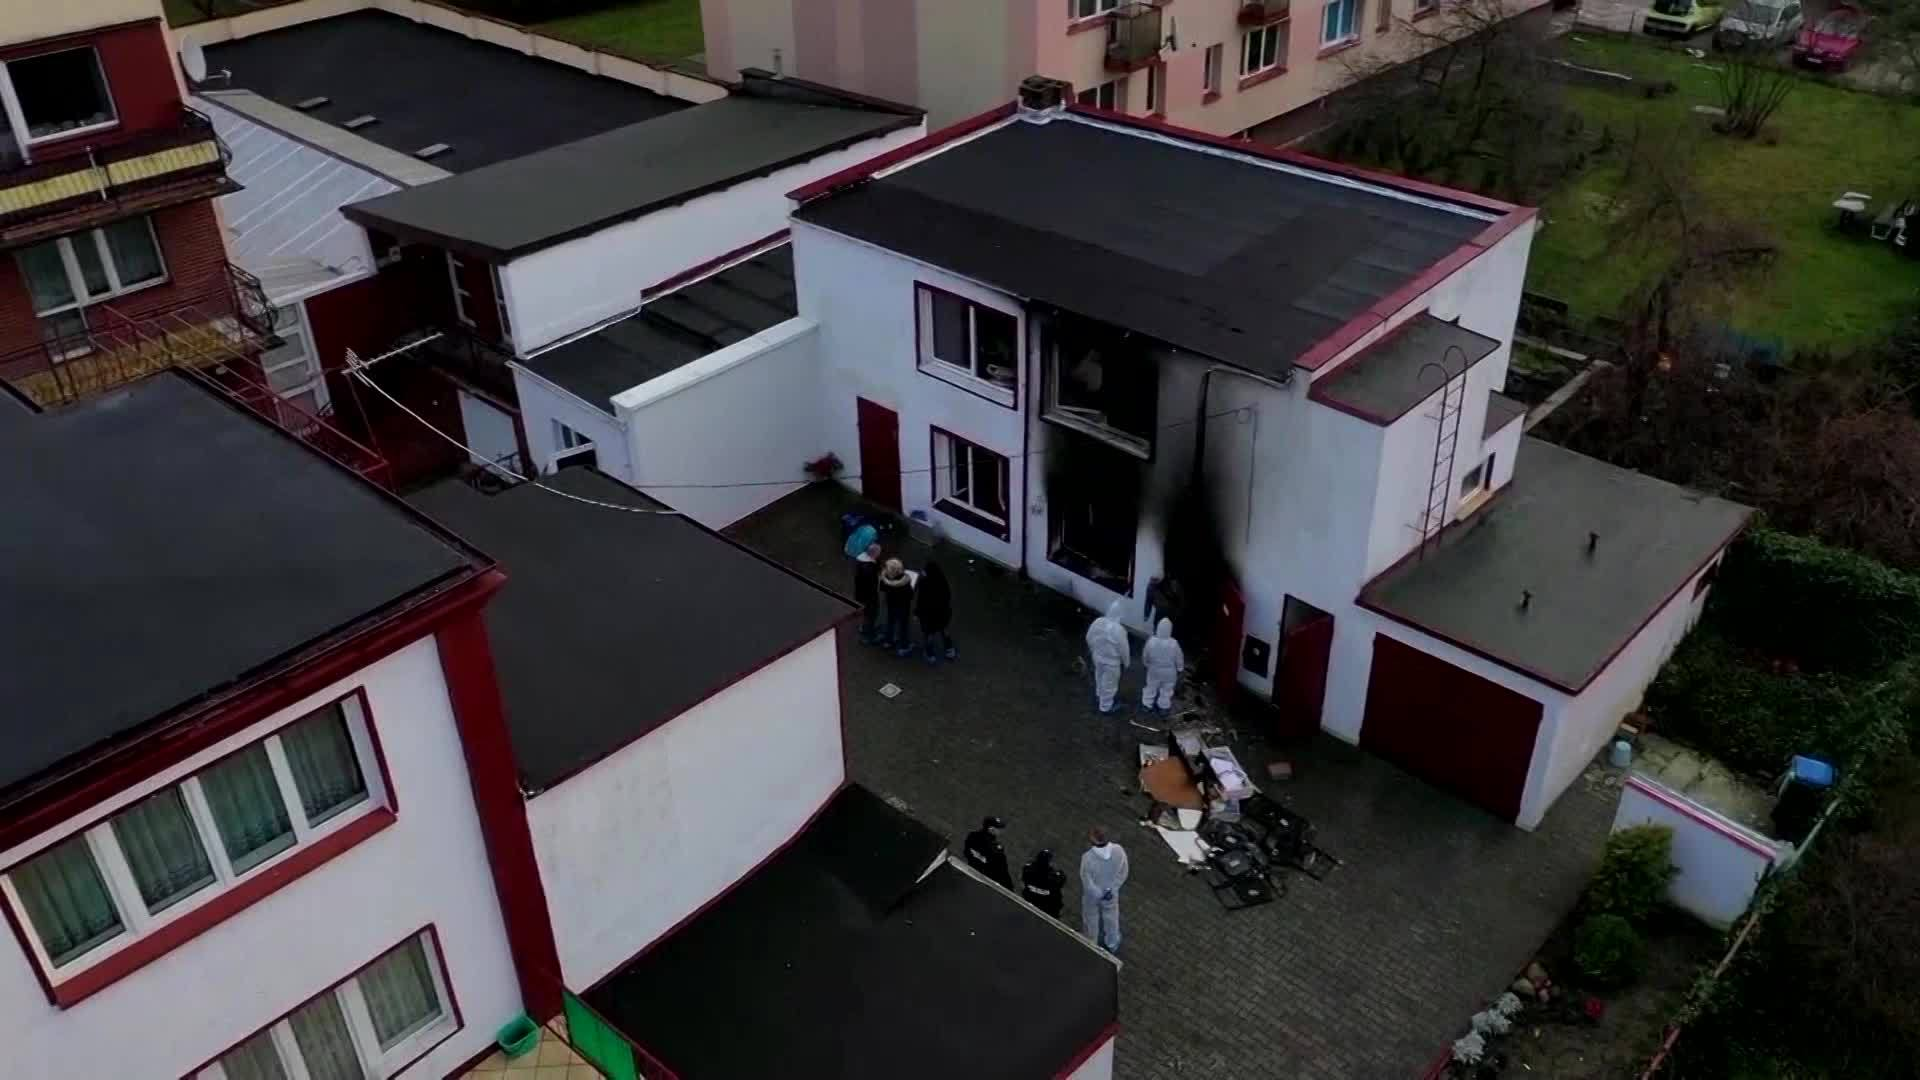 Faulty wiring likely cause of 'Escape Room' fire in Poland